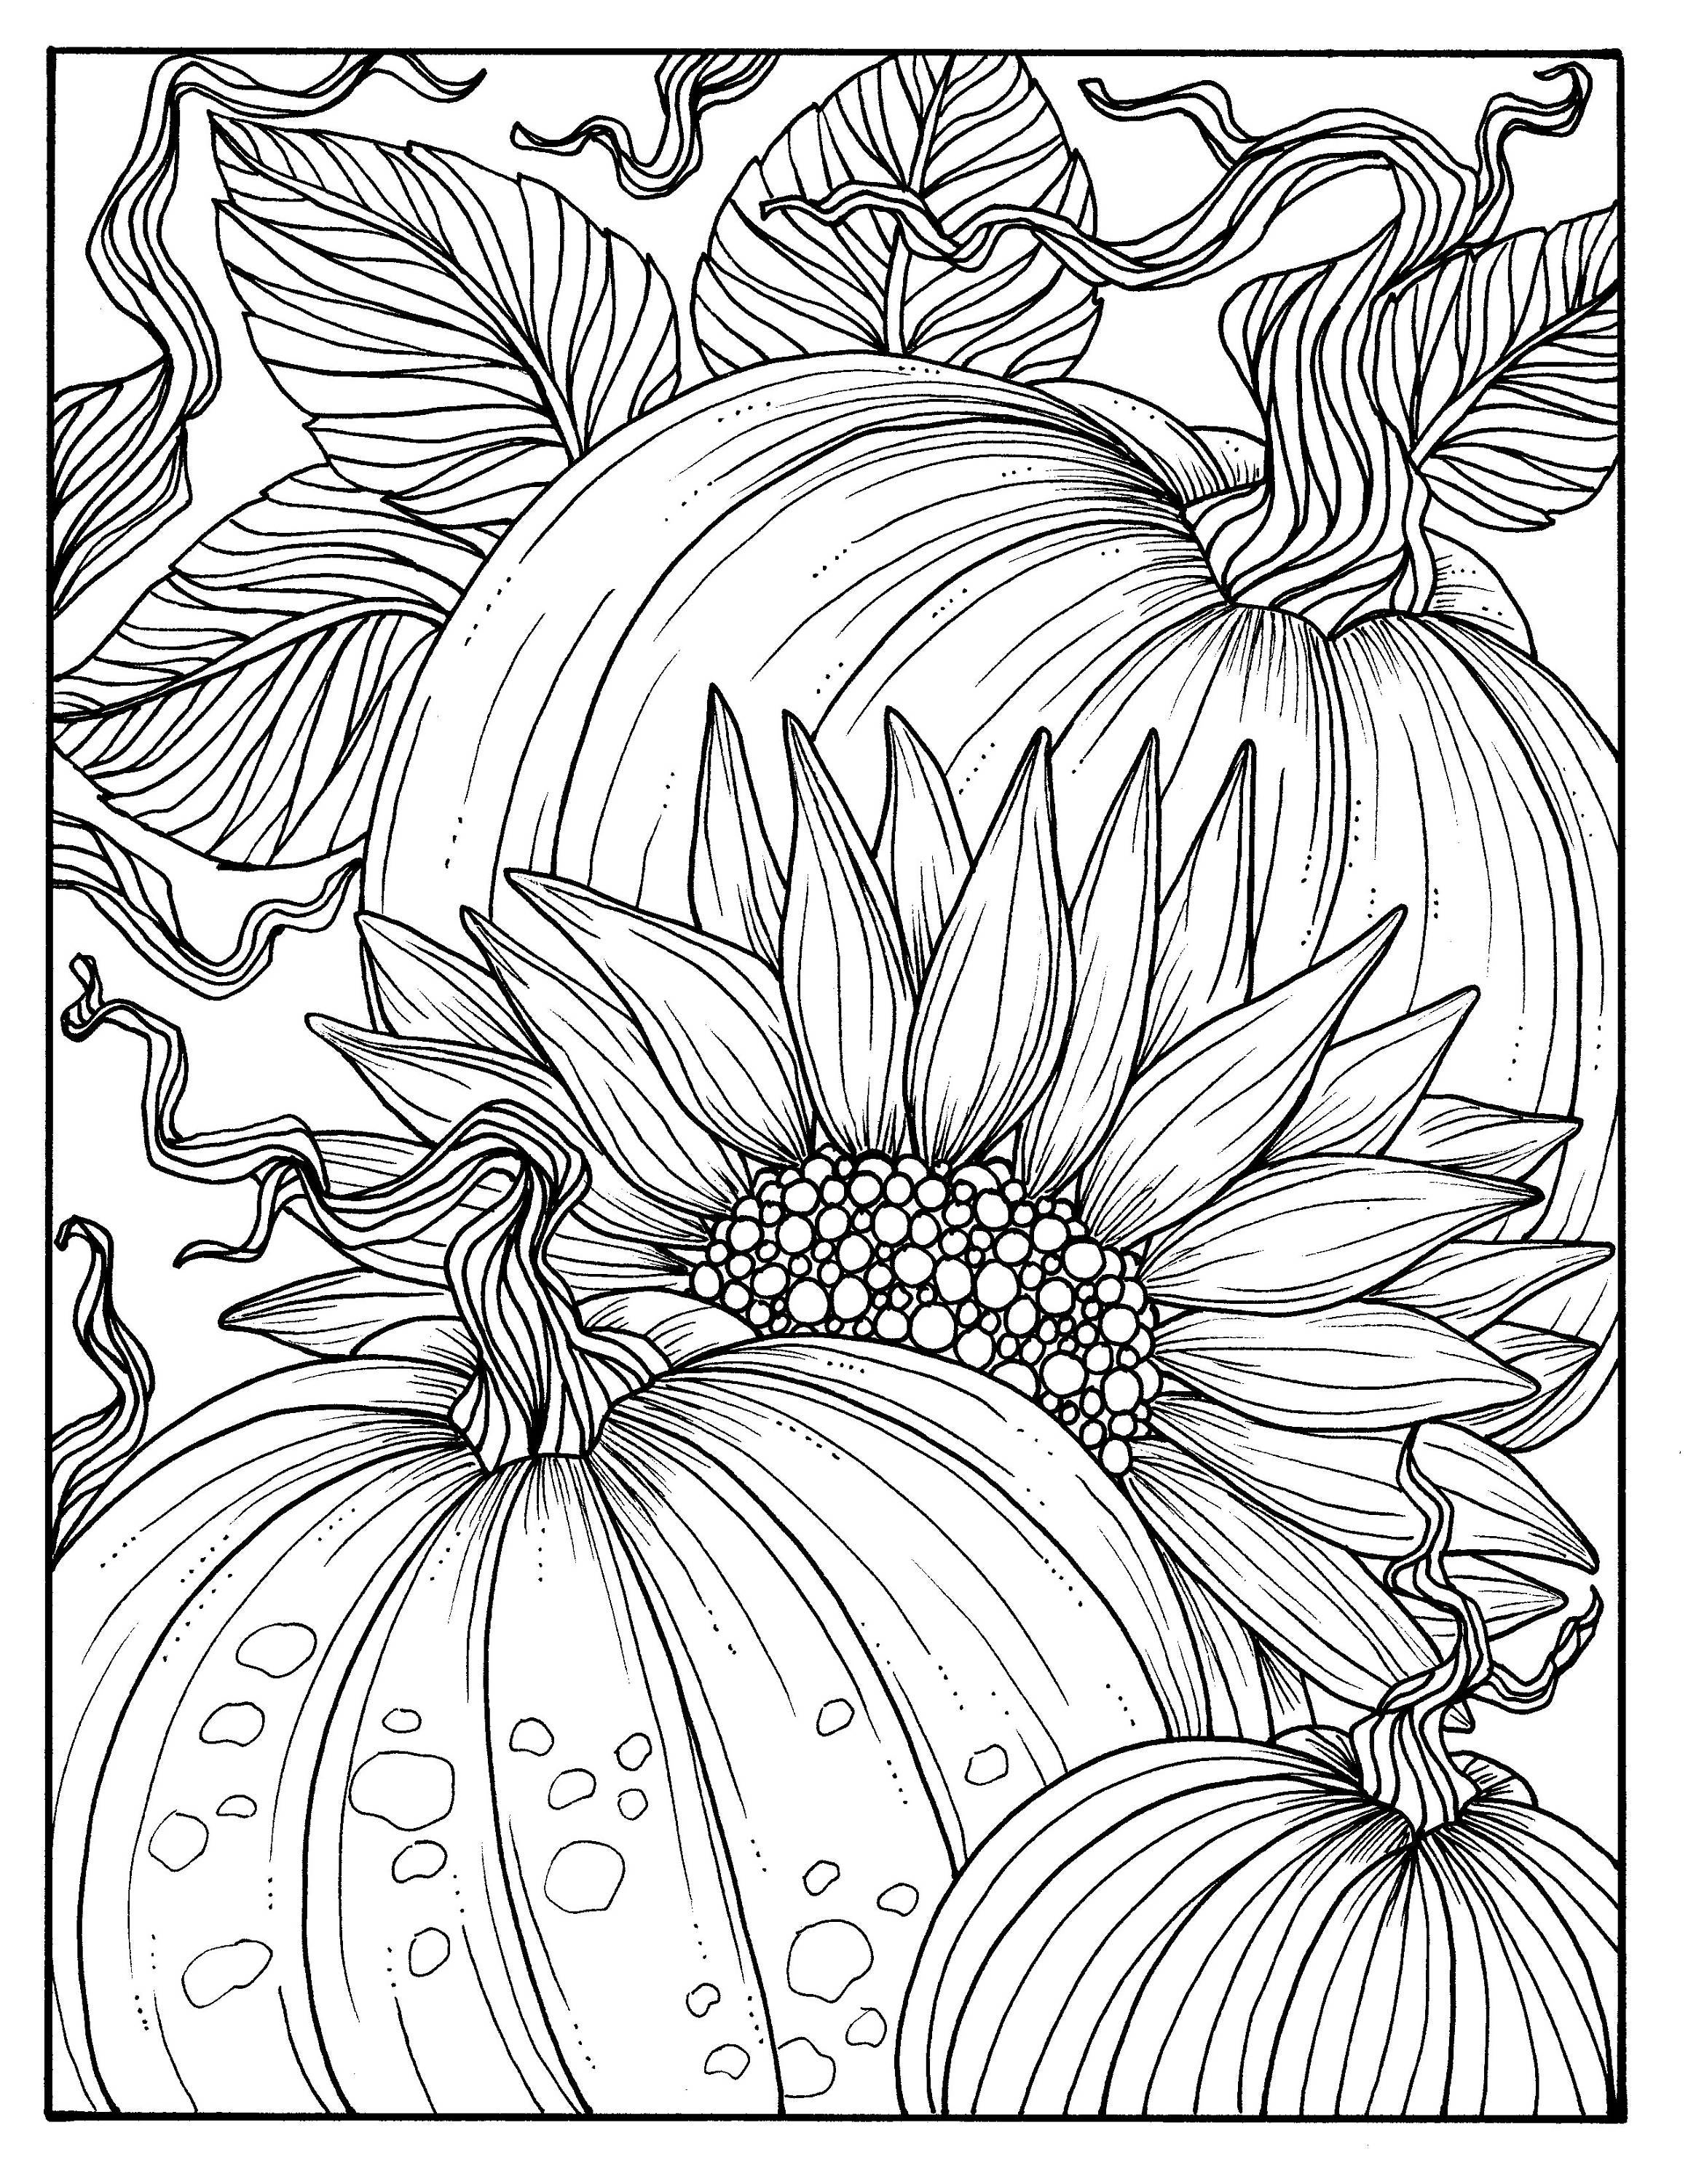 free autumn coloring pages for adults | 5 Pages Fabulous Fall Digital Downloads to Color Punpkins